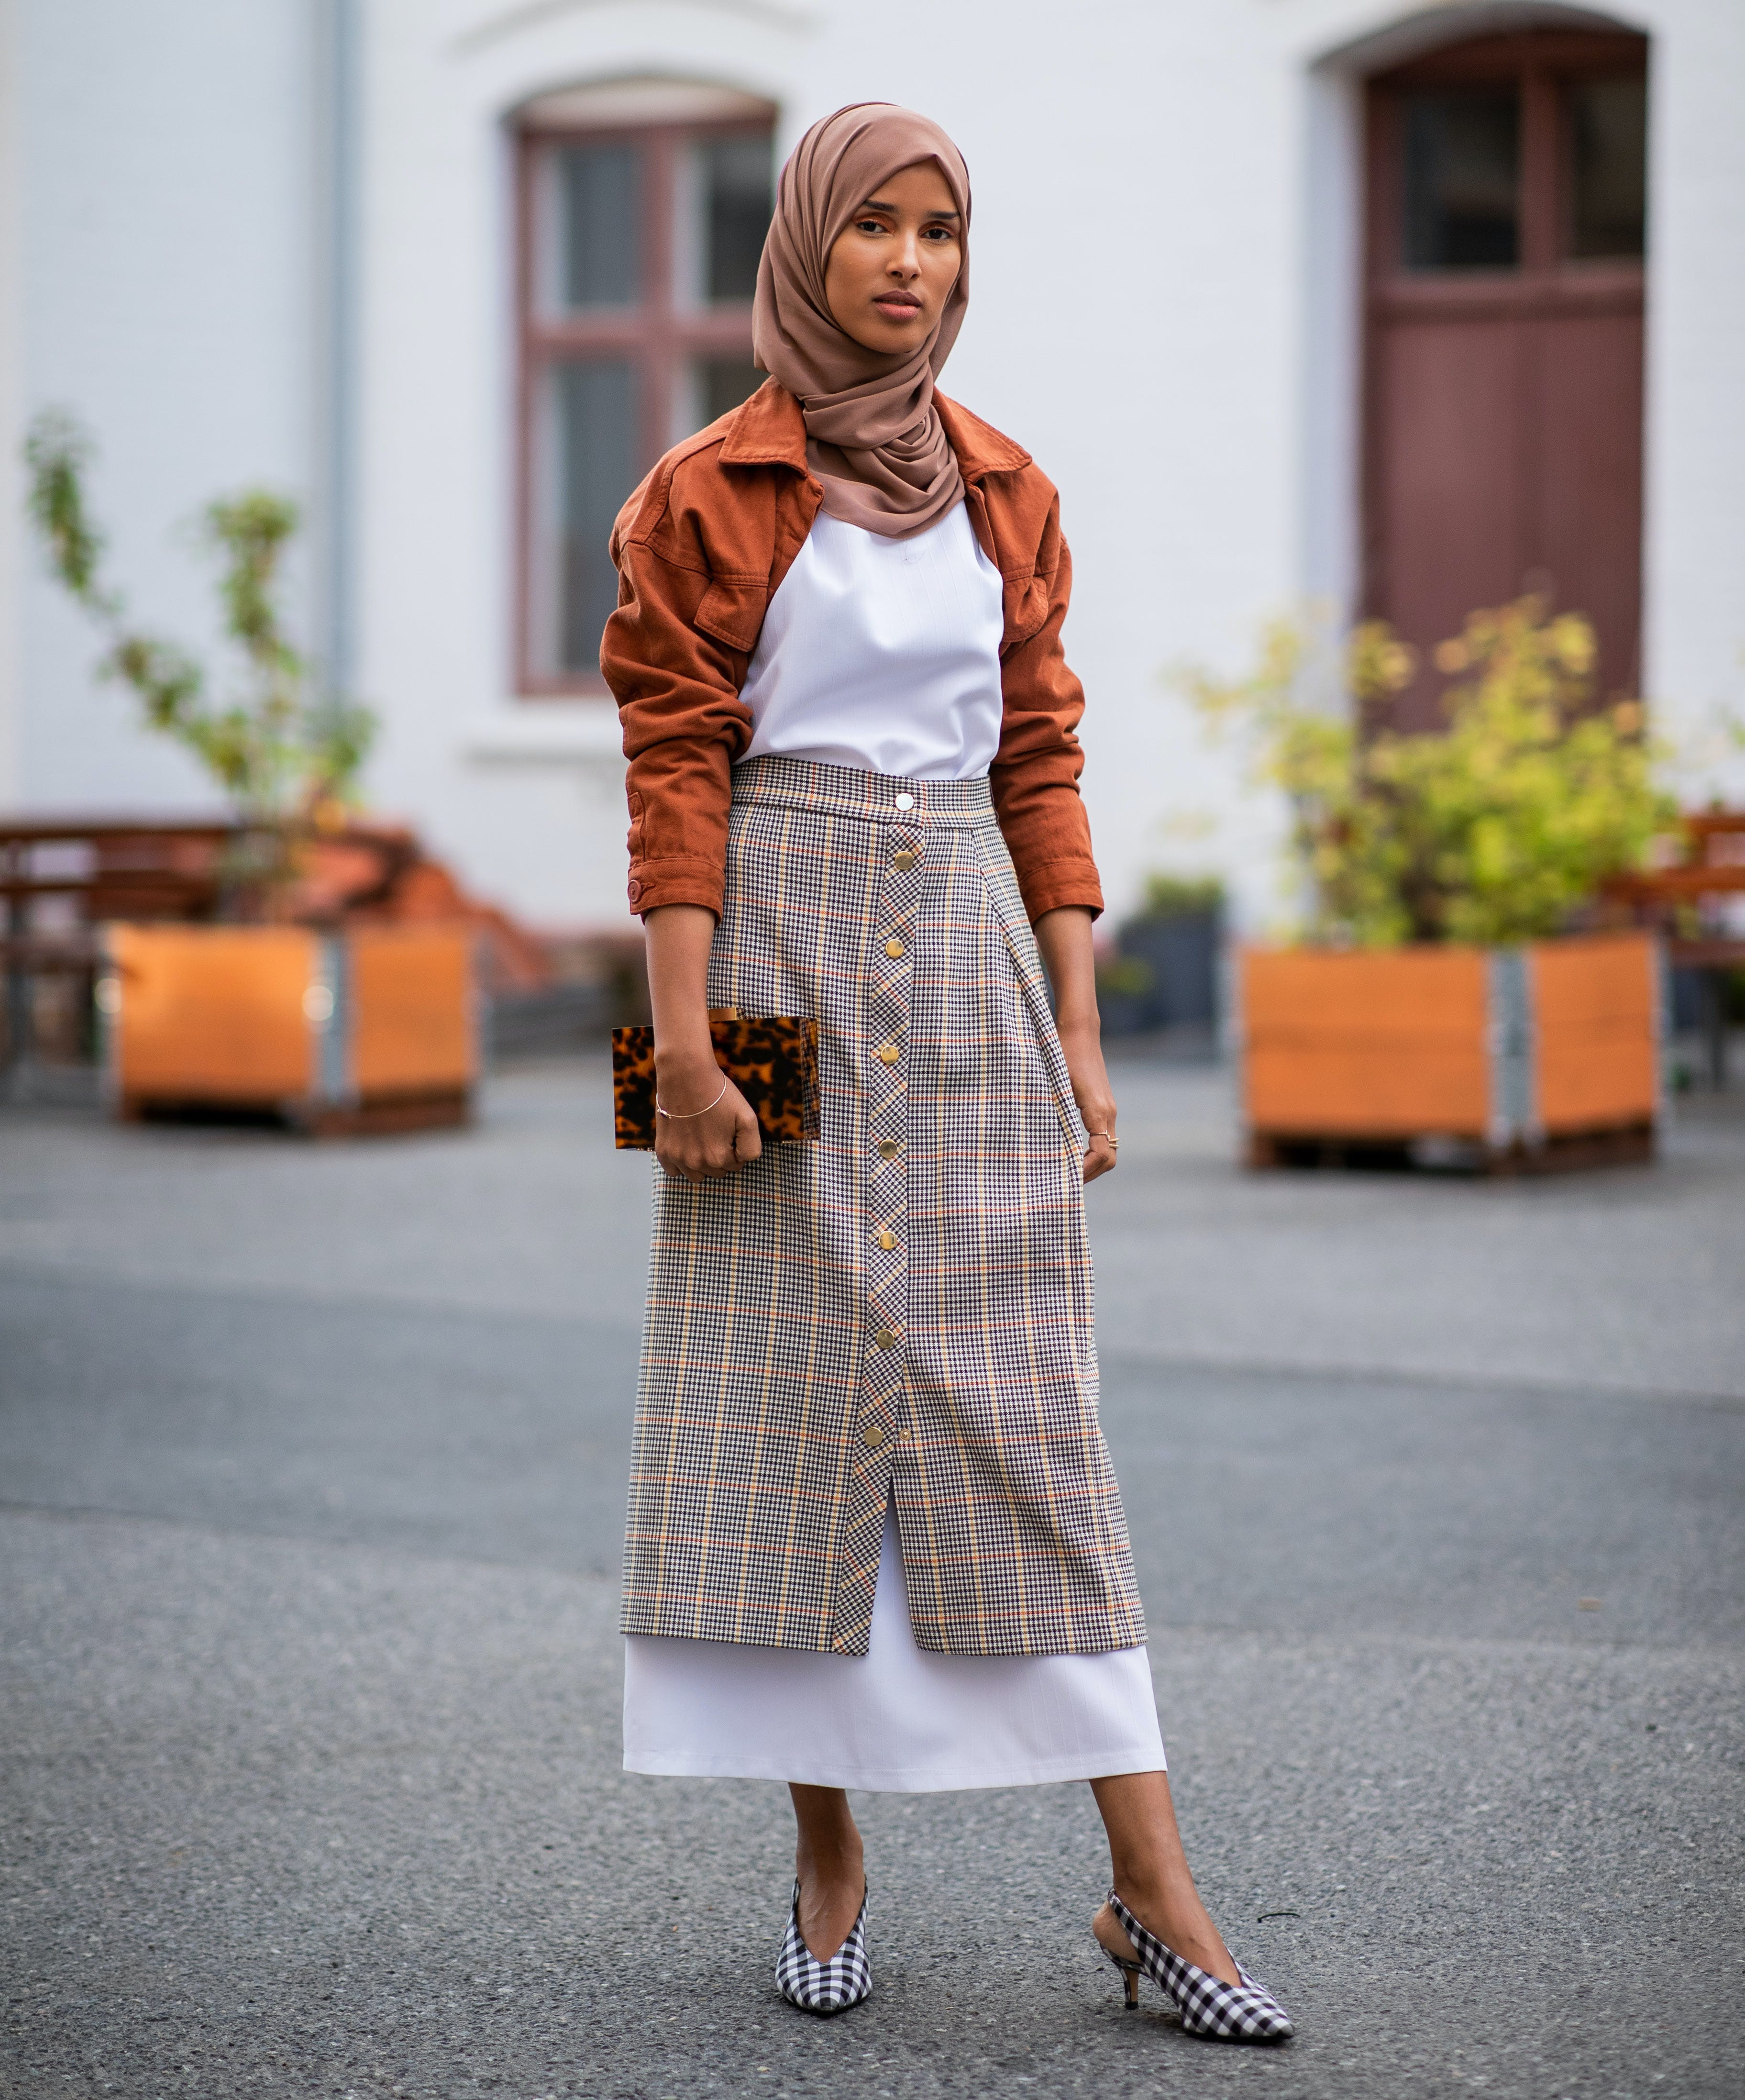 woman wearing a burnt orange jacket plaid skirt and gingham shoes